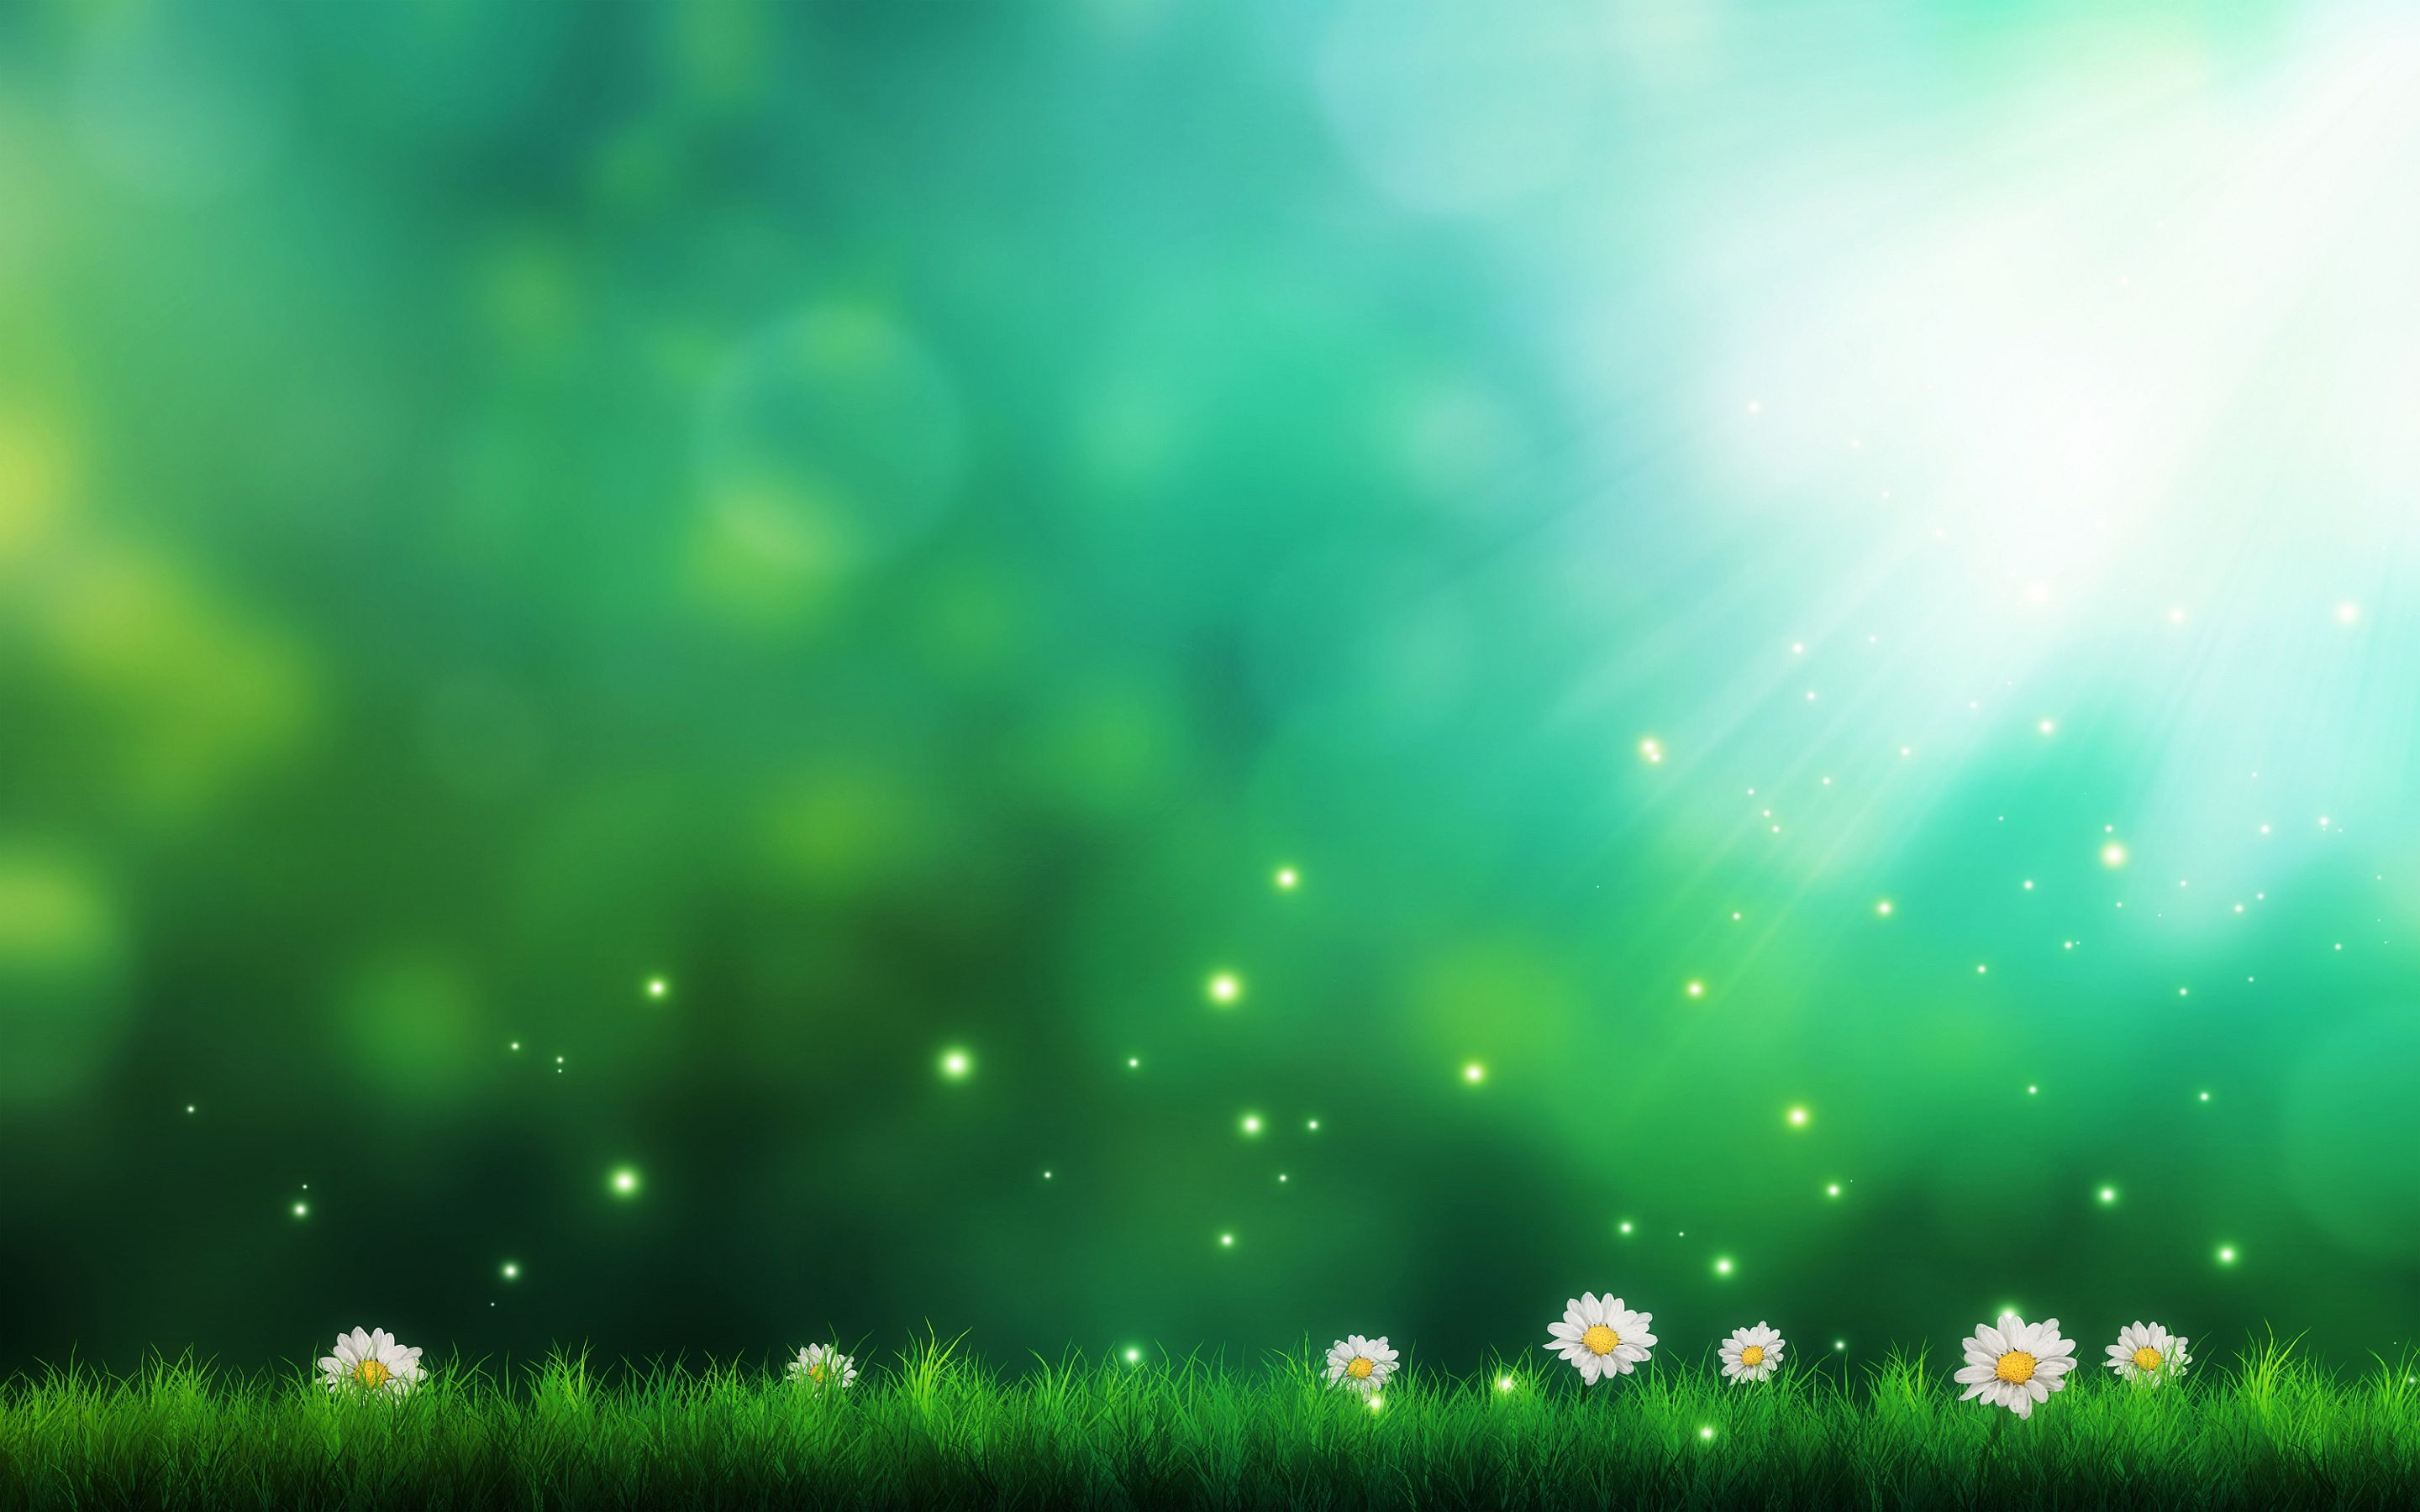 Daisies Green Background Nature Backgrounds Iphone Green Nature Background Hd Wallpaper